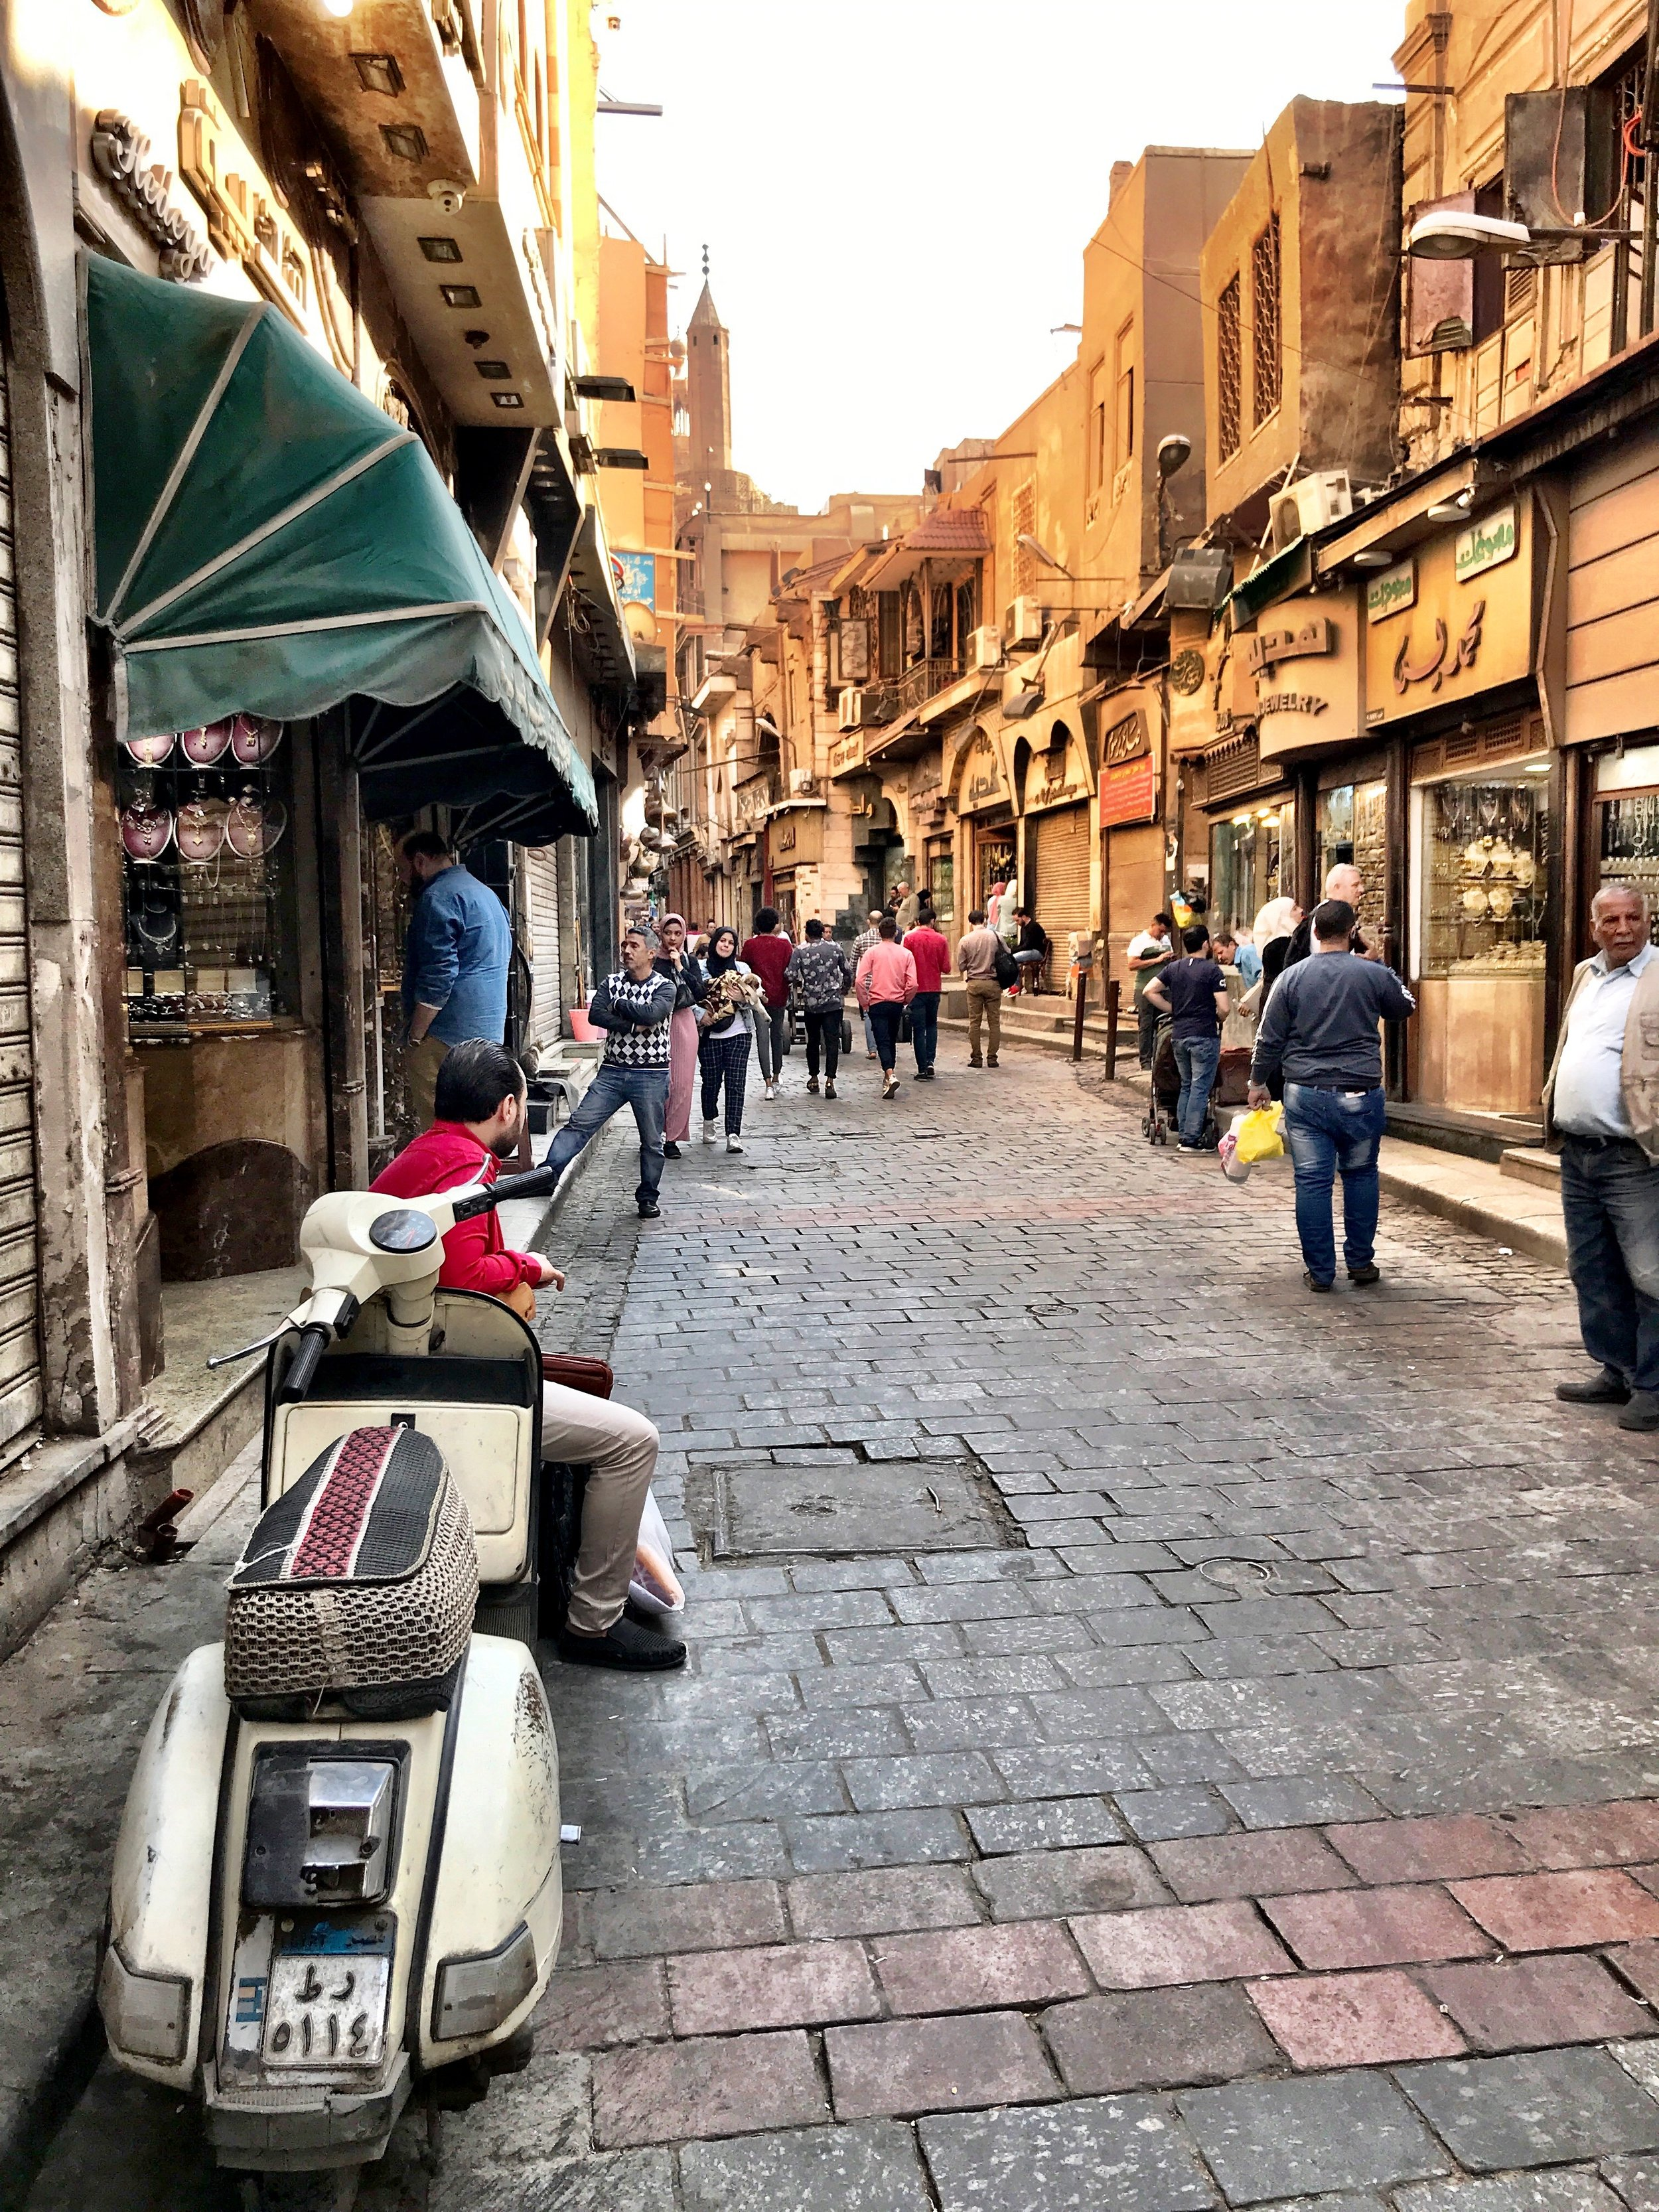 Motorbikes whizz through the souk — as it got dark, one almost ran right into Duke!